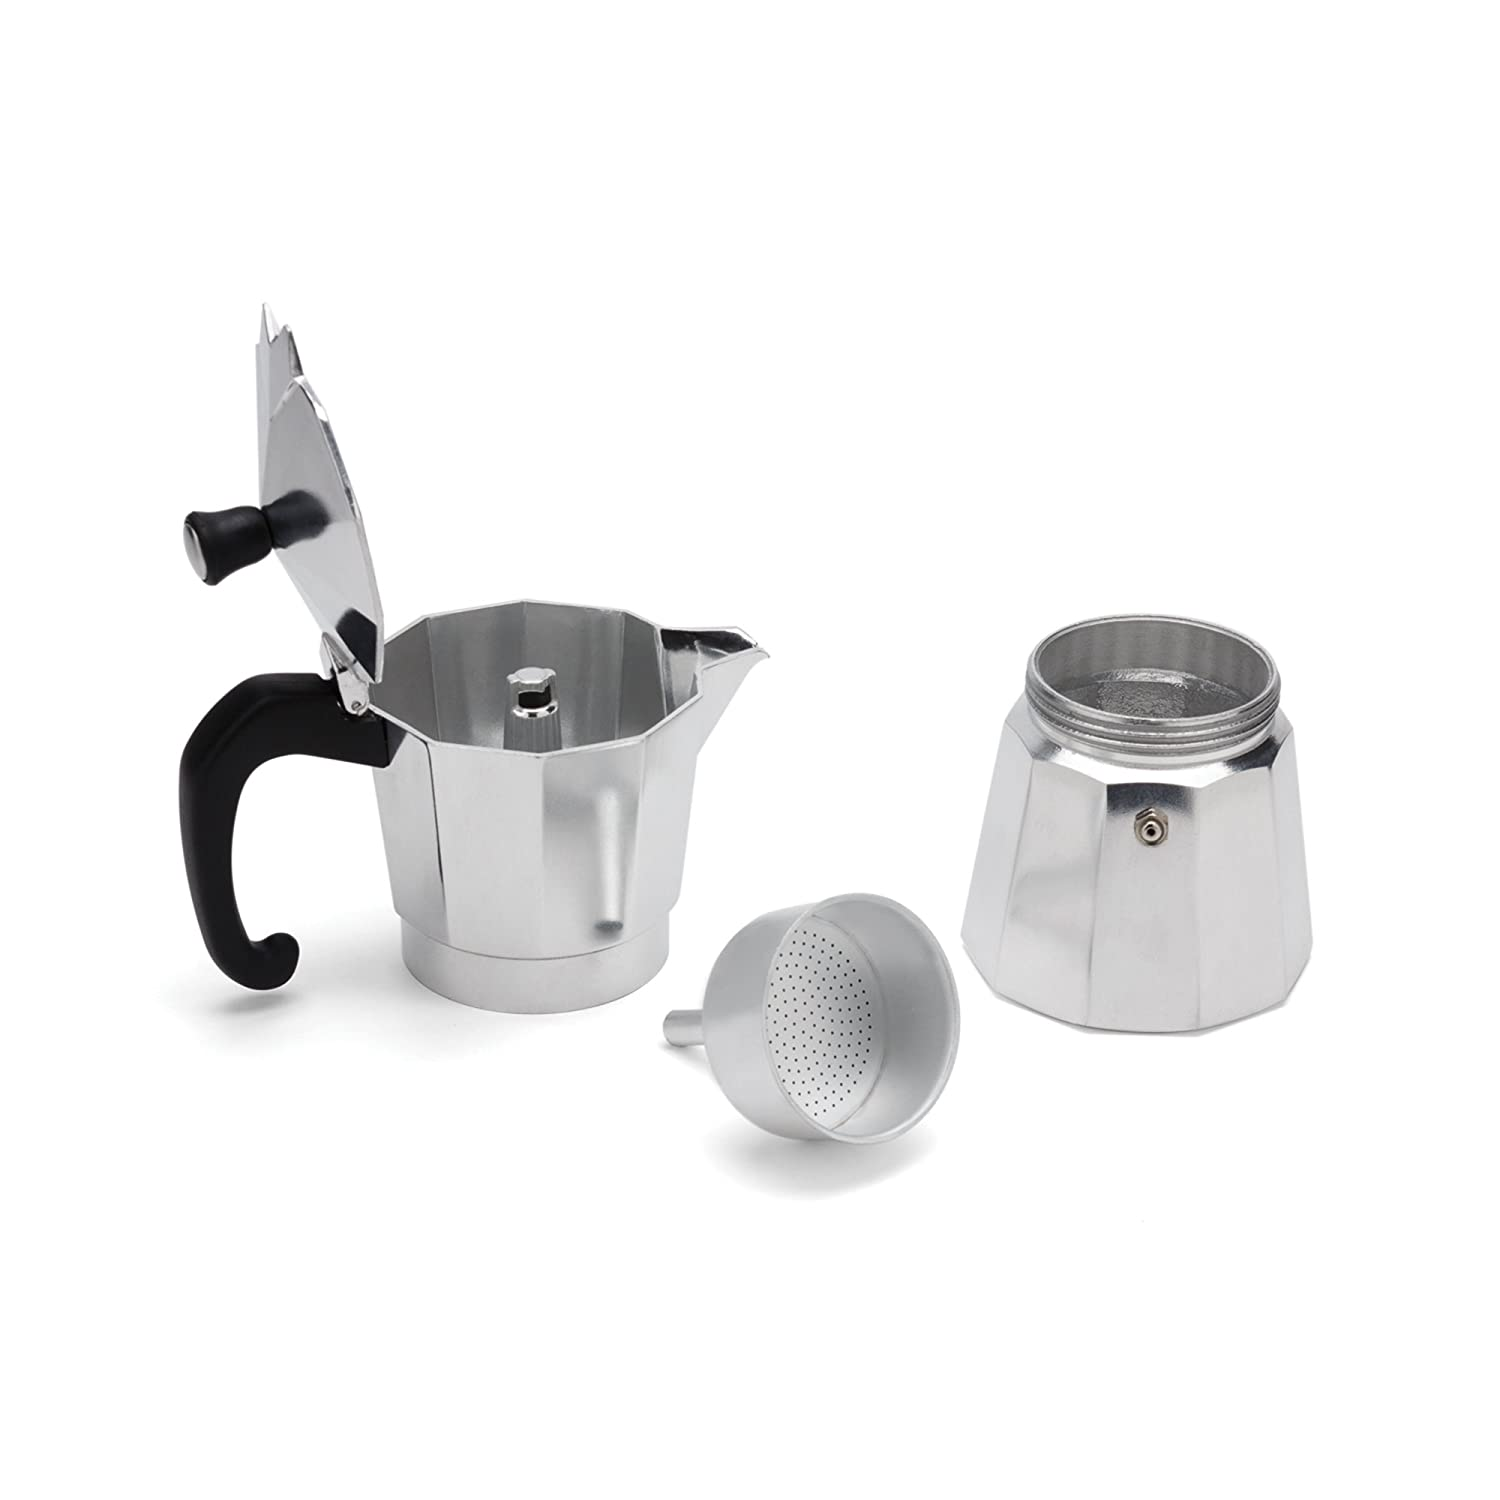 Tops 55730 Espresso Coffee Maker, Forever 6 Cup